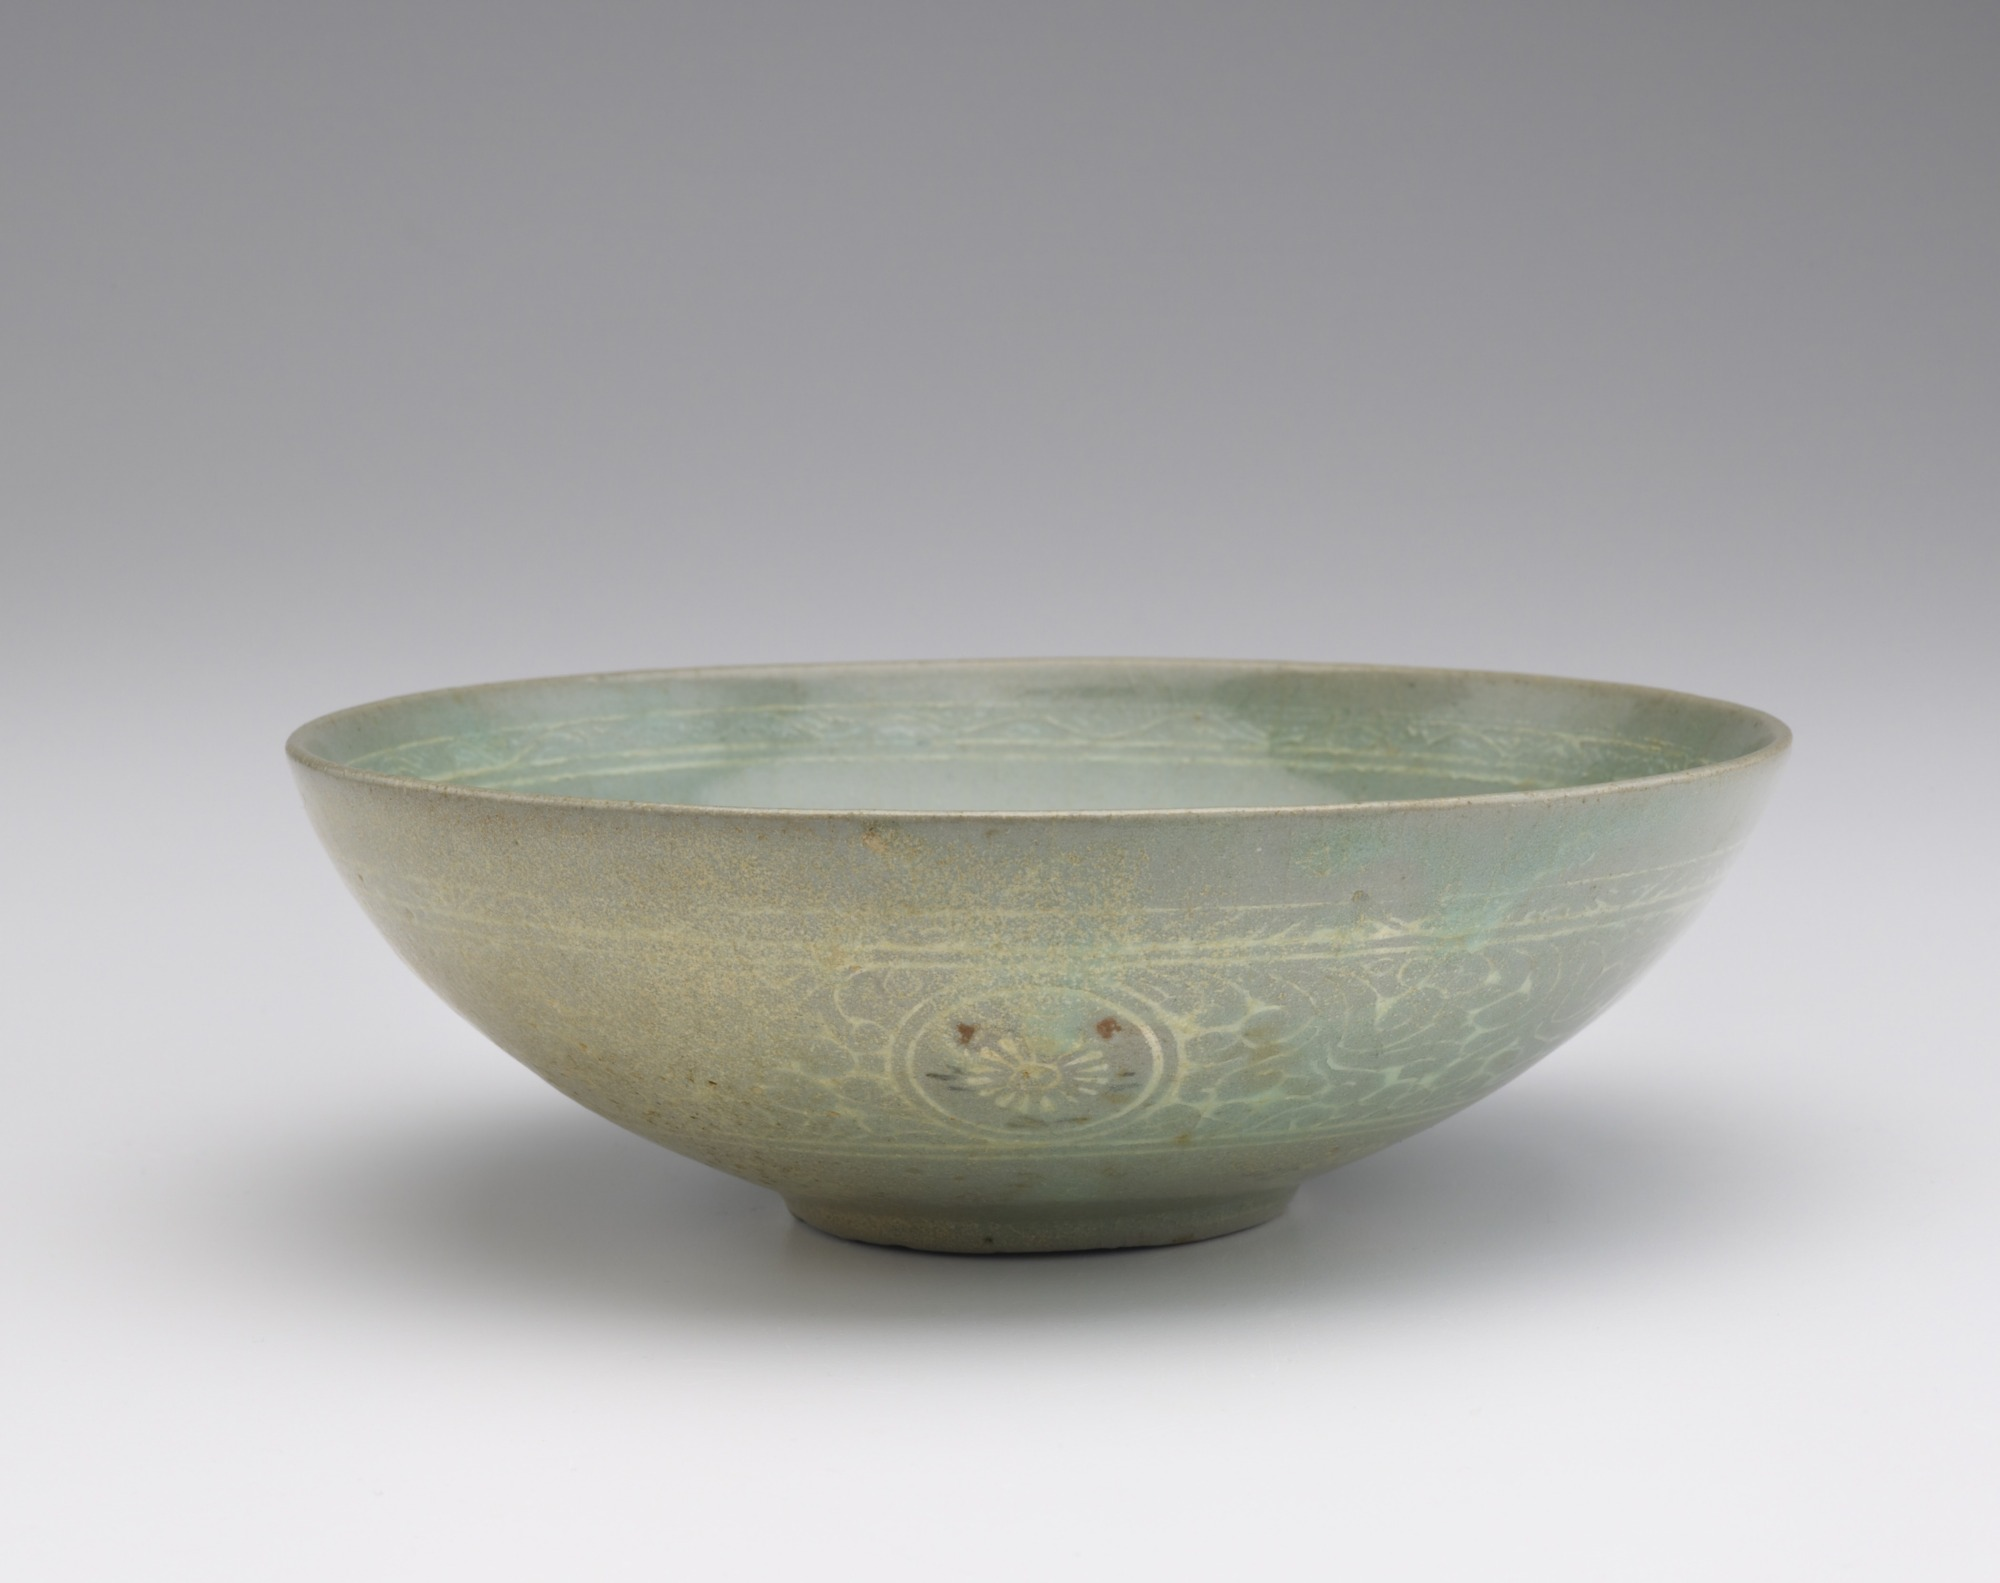 Bowl with inlaid design of alternating chrysanthemums and lichee sprays, profile